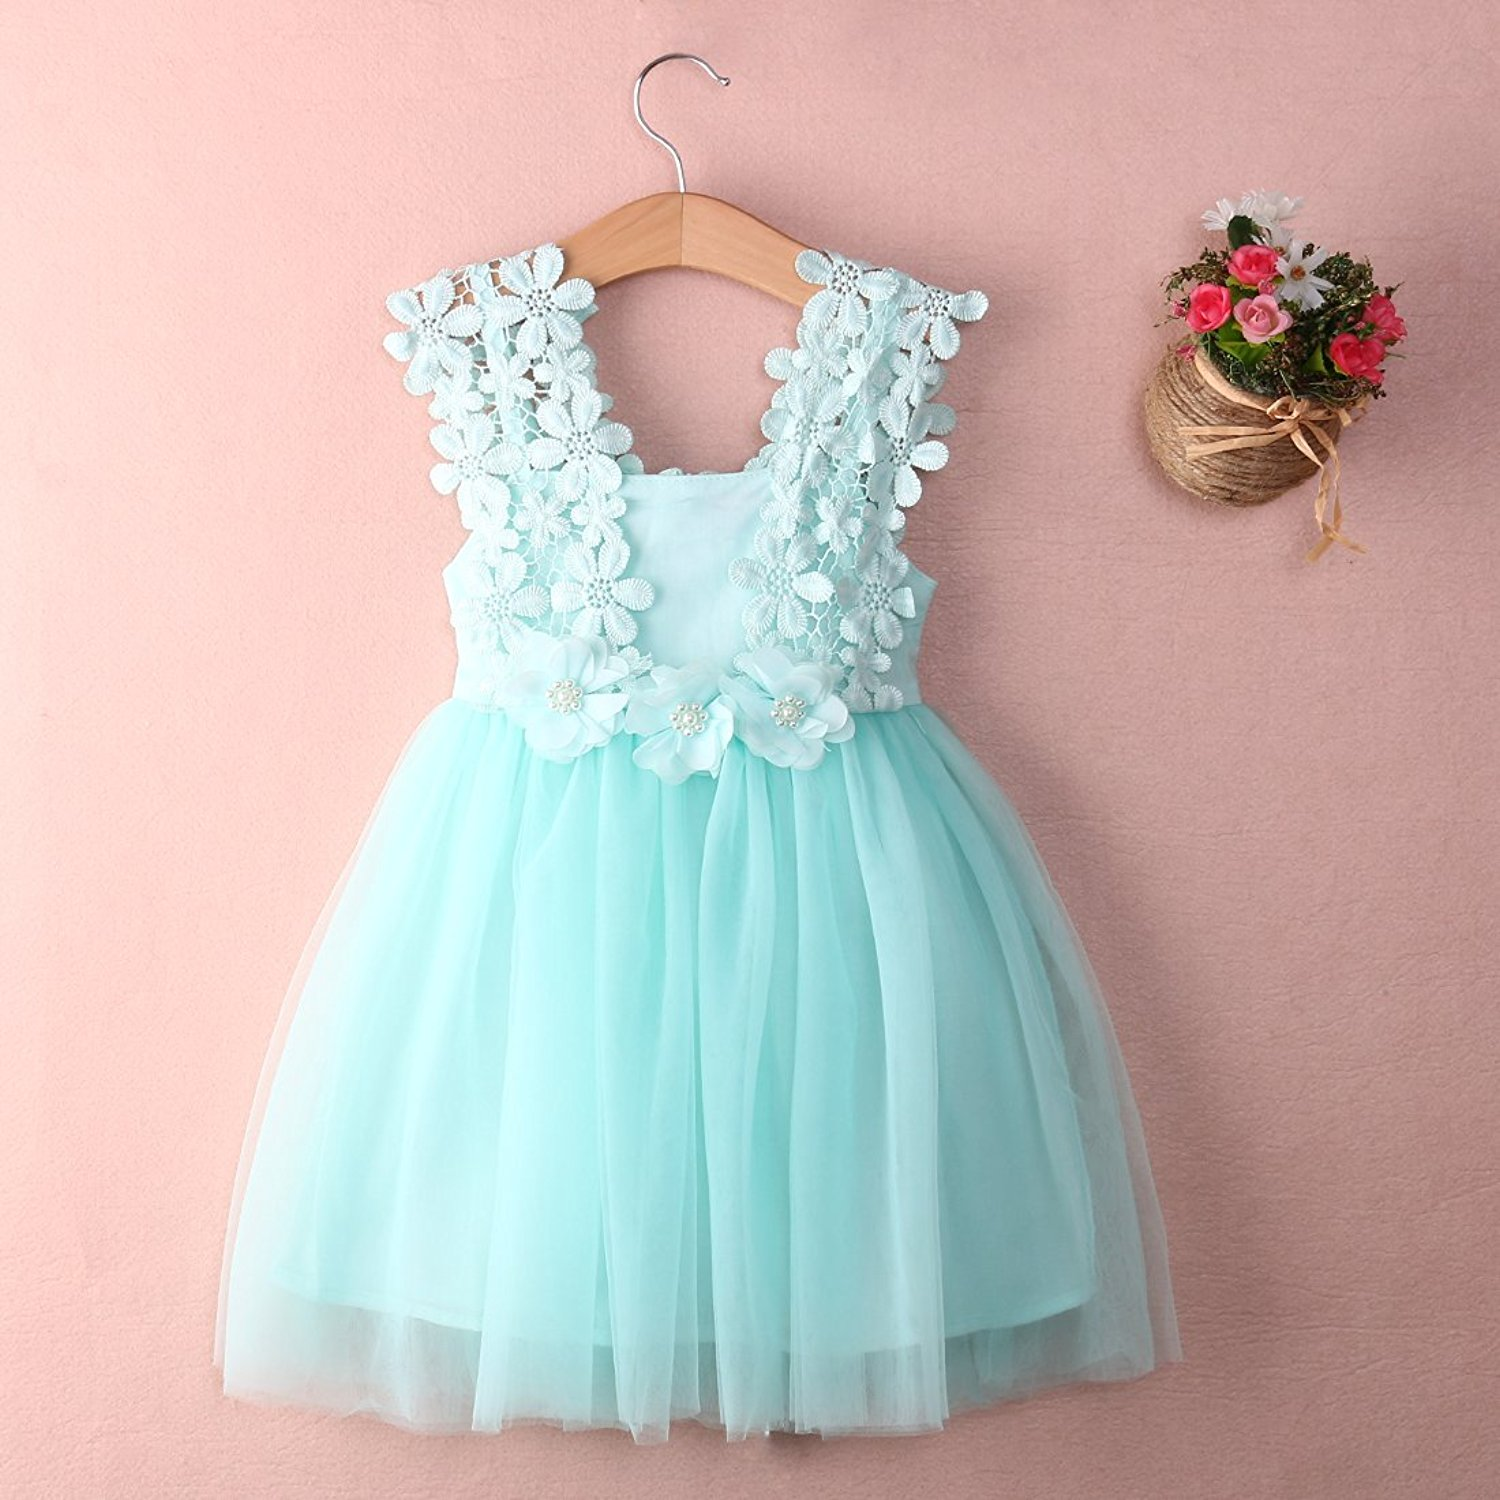 Baby Party Dresses - Nini Dress